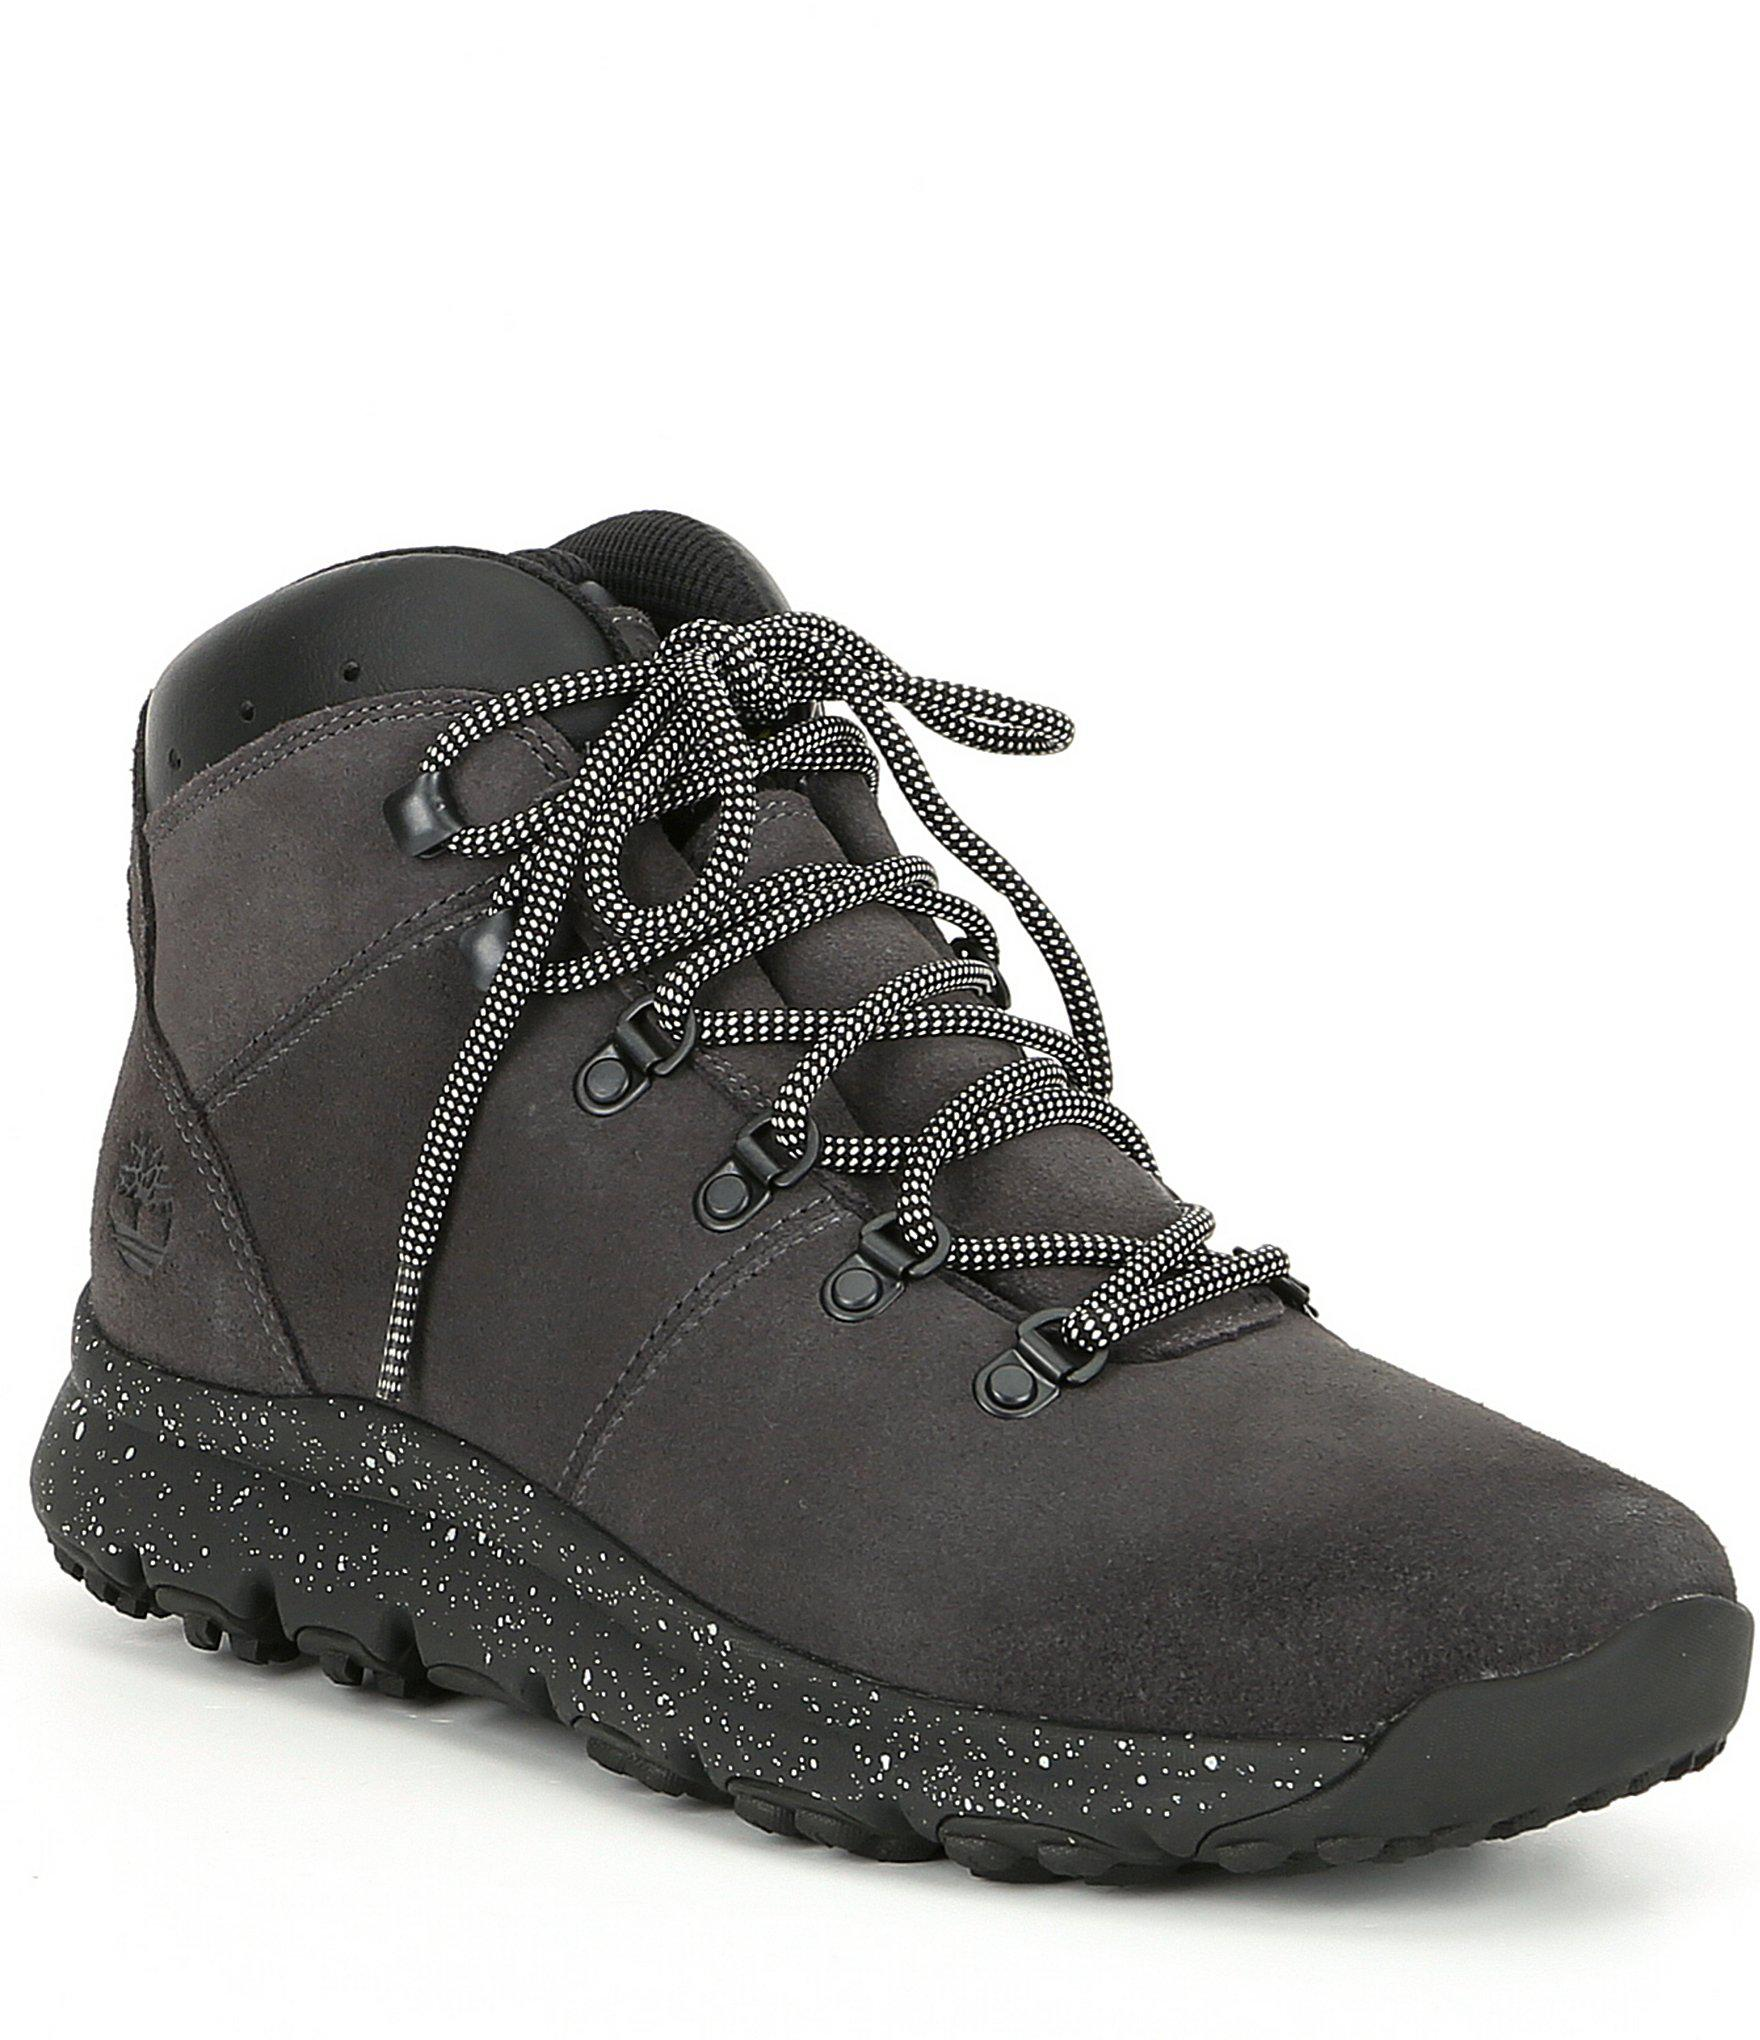 bc7725d1448d Lyst - Timberland Men s World Hiker Boots in Gray for Men